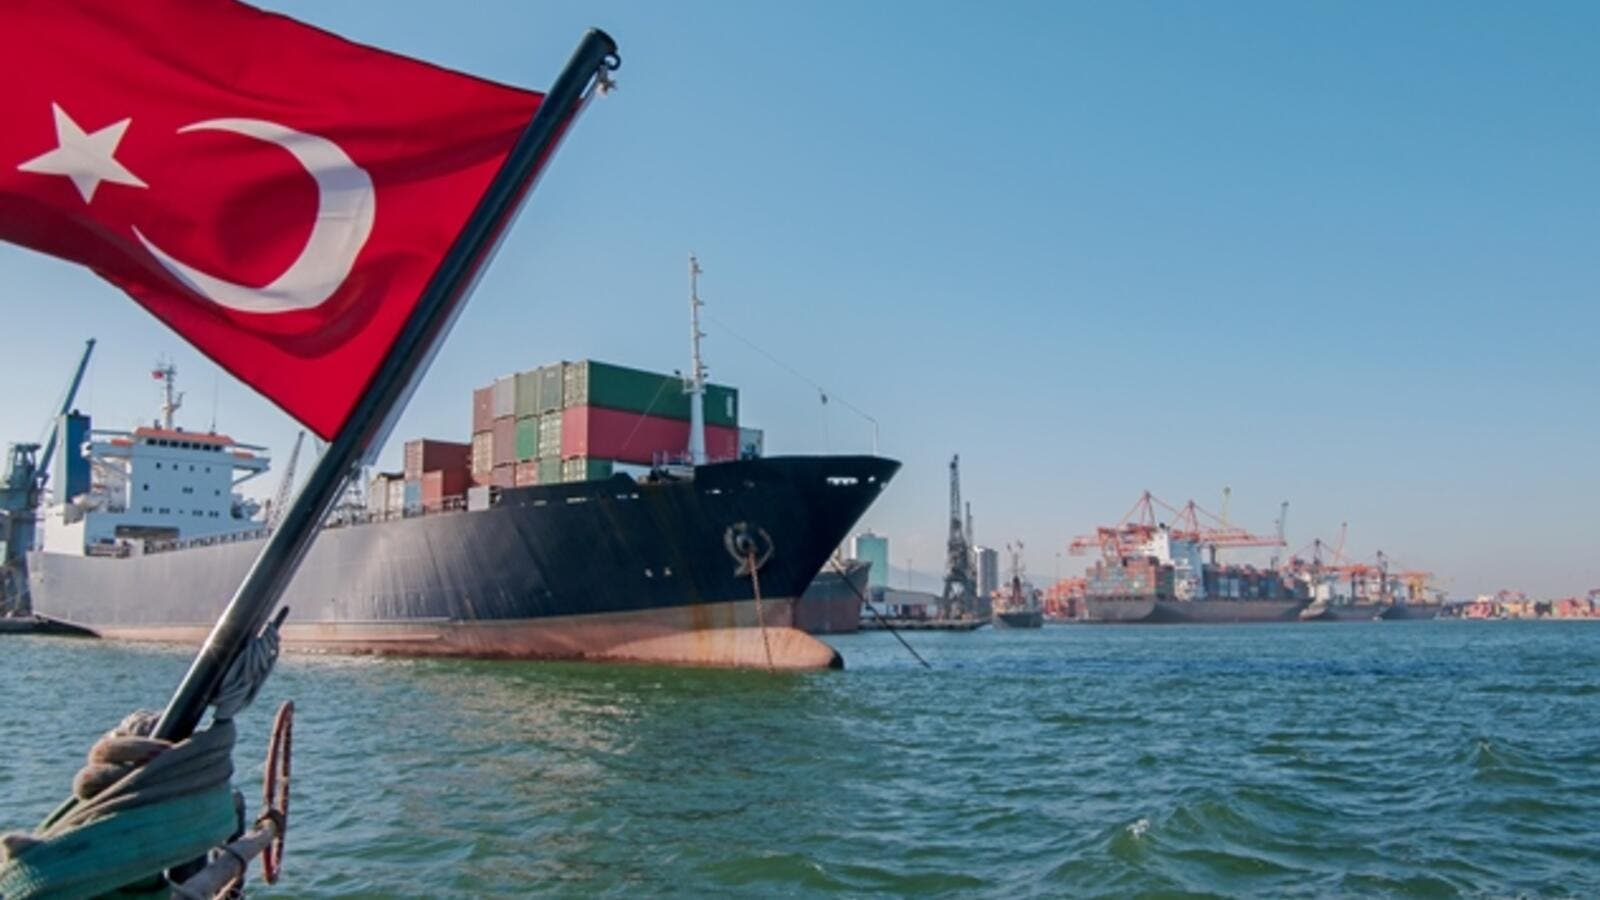 Turkish exports rose 7 percent on a yearly basis to hit $168 billion. (Shutterstock)